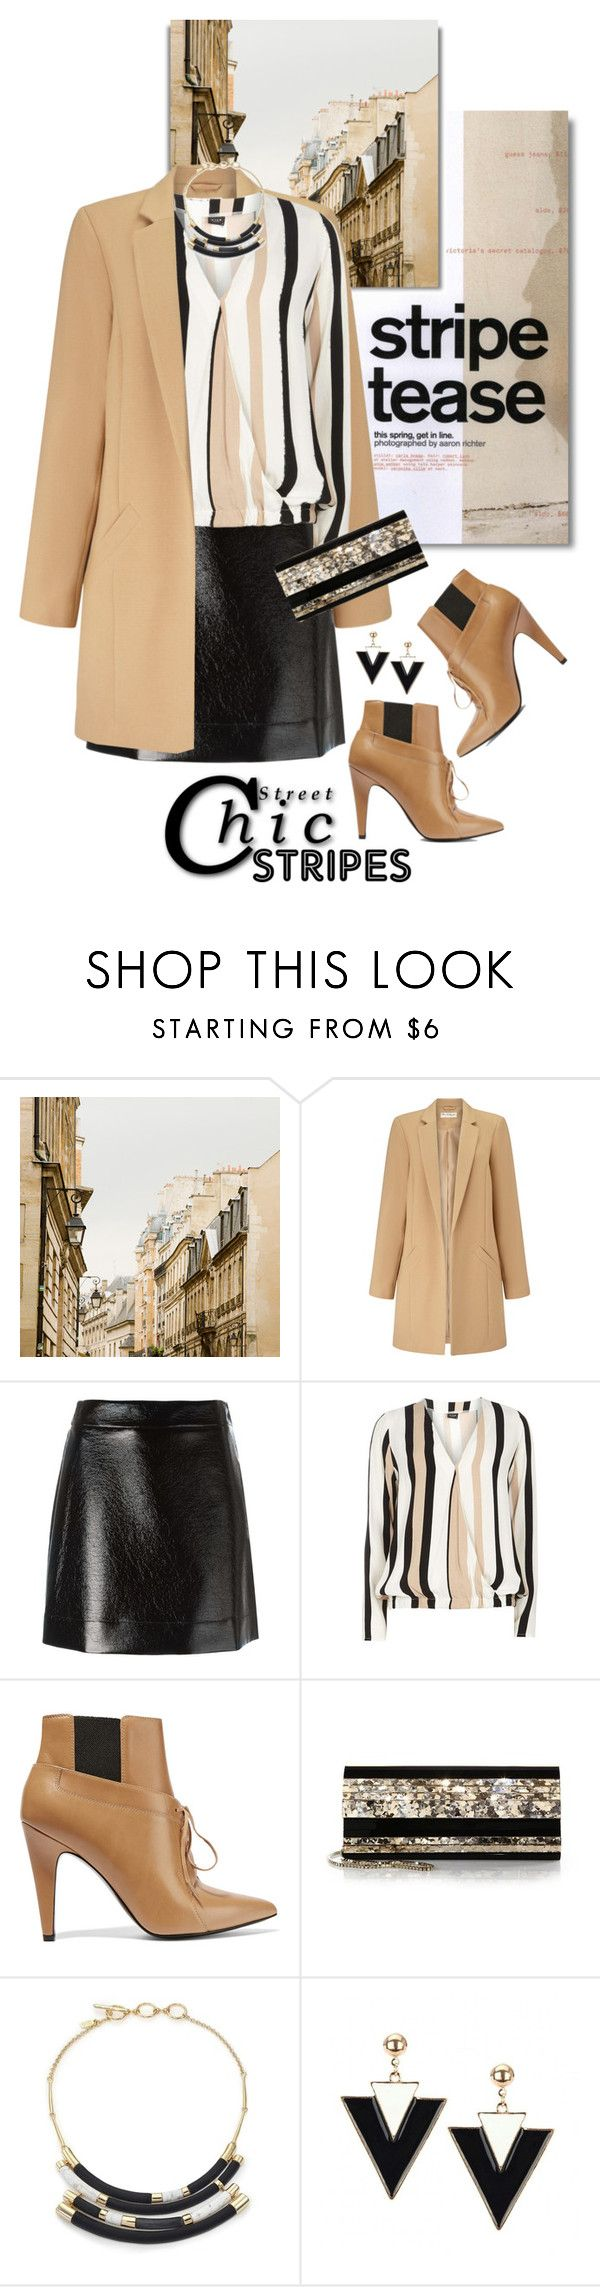 """""""One Direction: Striped Shirts"""" by shortyluv718 ❤ liked on Polyvore featuring Miss Selfridge, MICHAEL Michael Kors, Dorothy Perkins, Alexander Wang, Jimmy Choo, Alexis Bittar and stripes"""